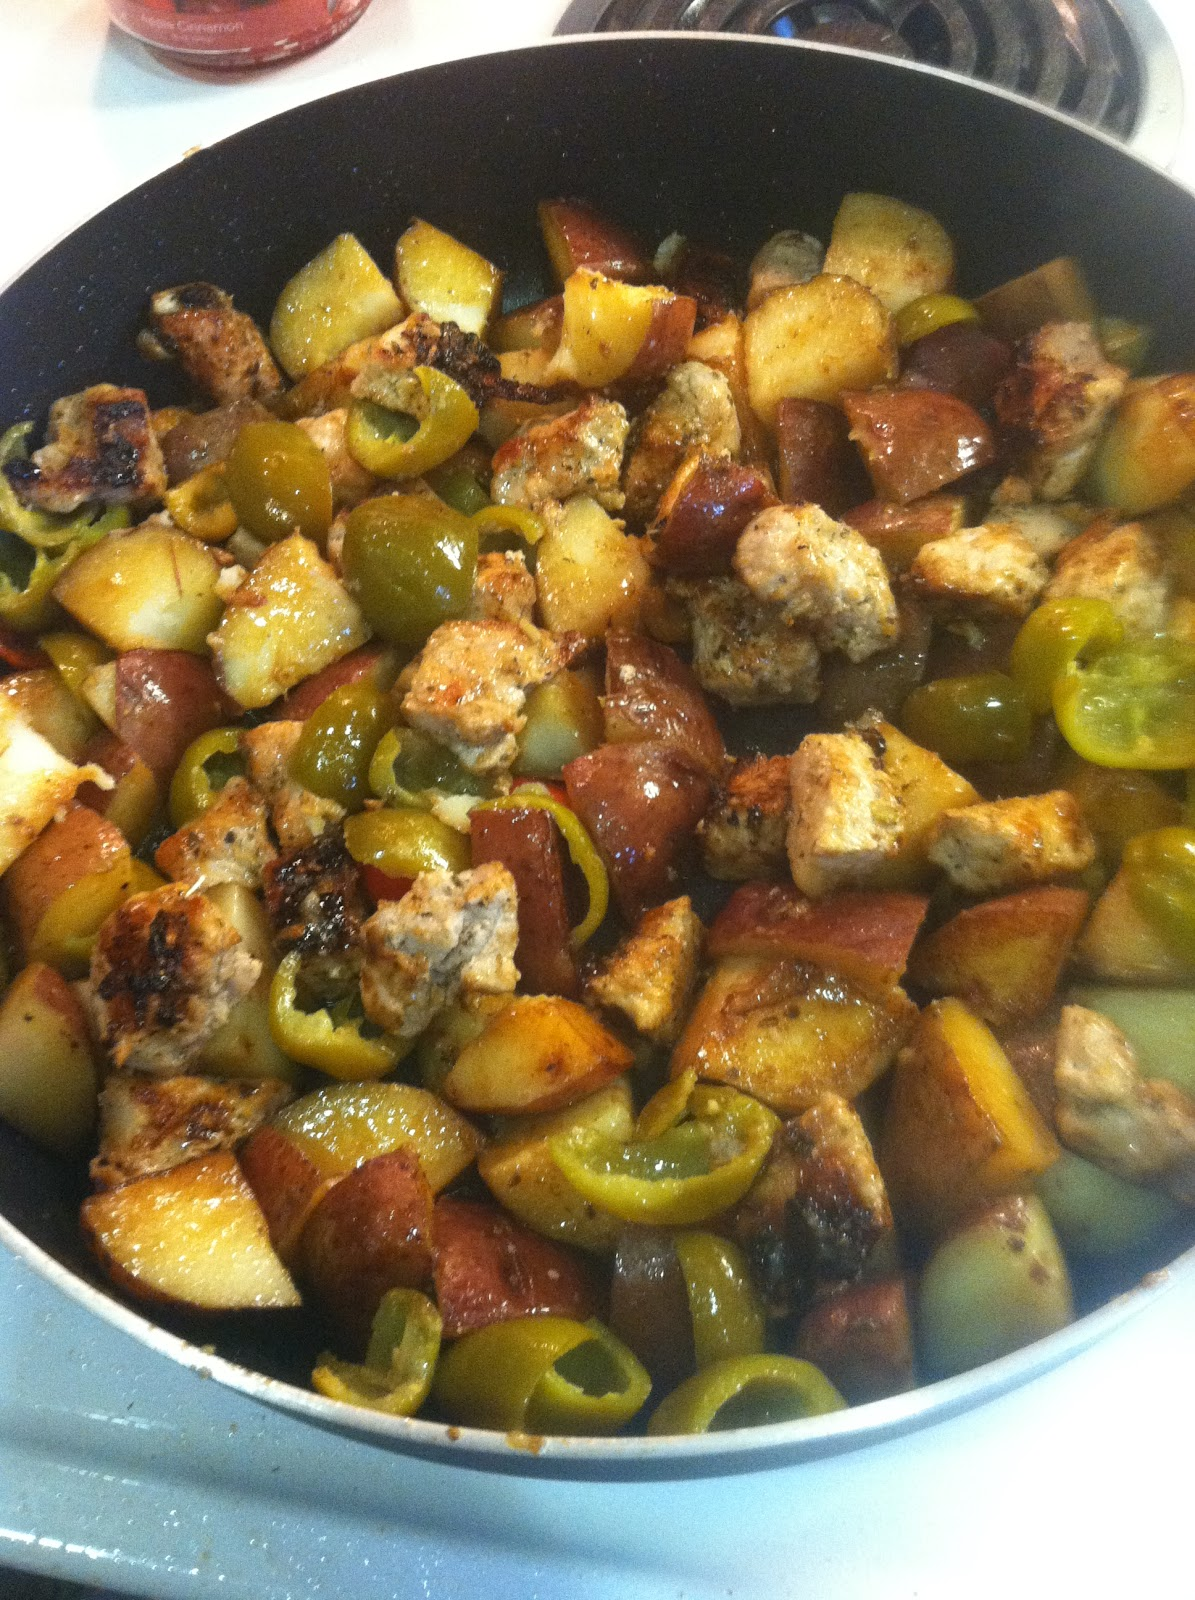 Return The Pork To The Skillet, Adding The Peppers If Using Pickled Peppers,  Cover And Cook Until The Potatoes Are Tender, About 5 Minutes More